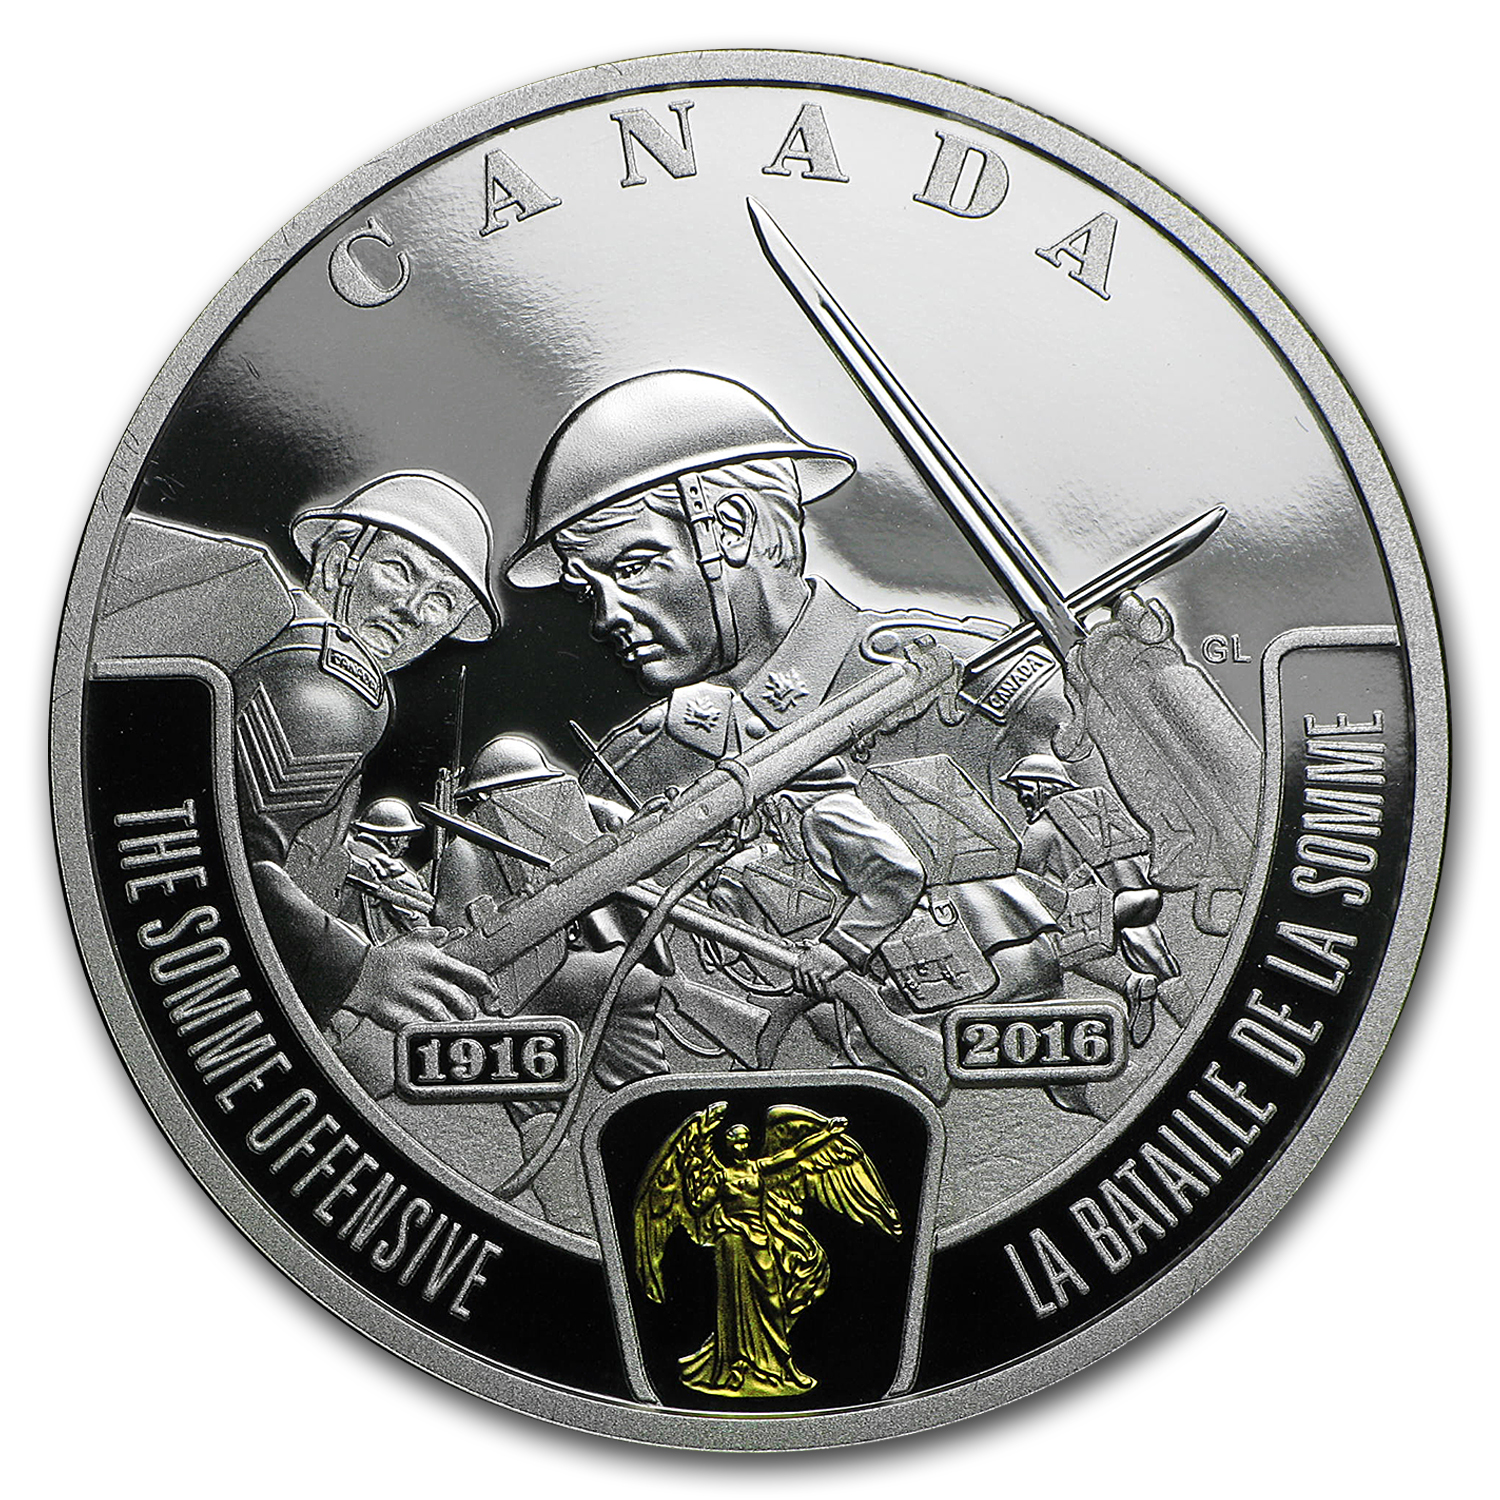 2016 Canada Silver $20 WWI Battlefront Series Somme Offensive